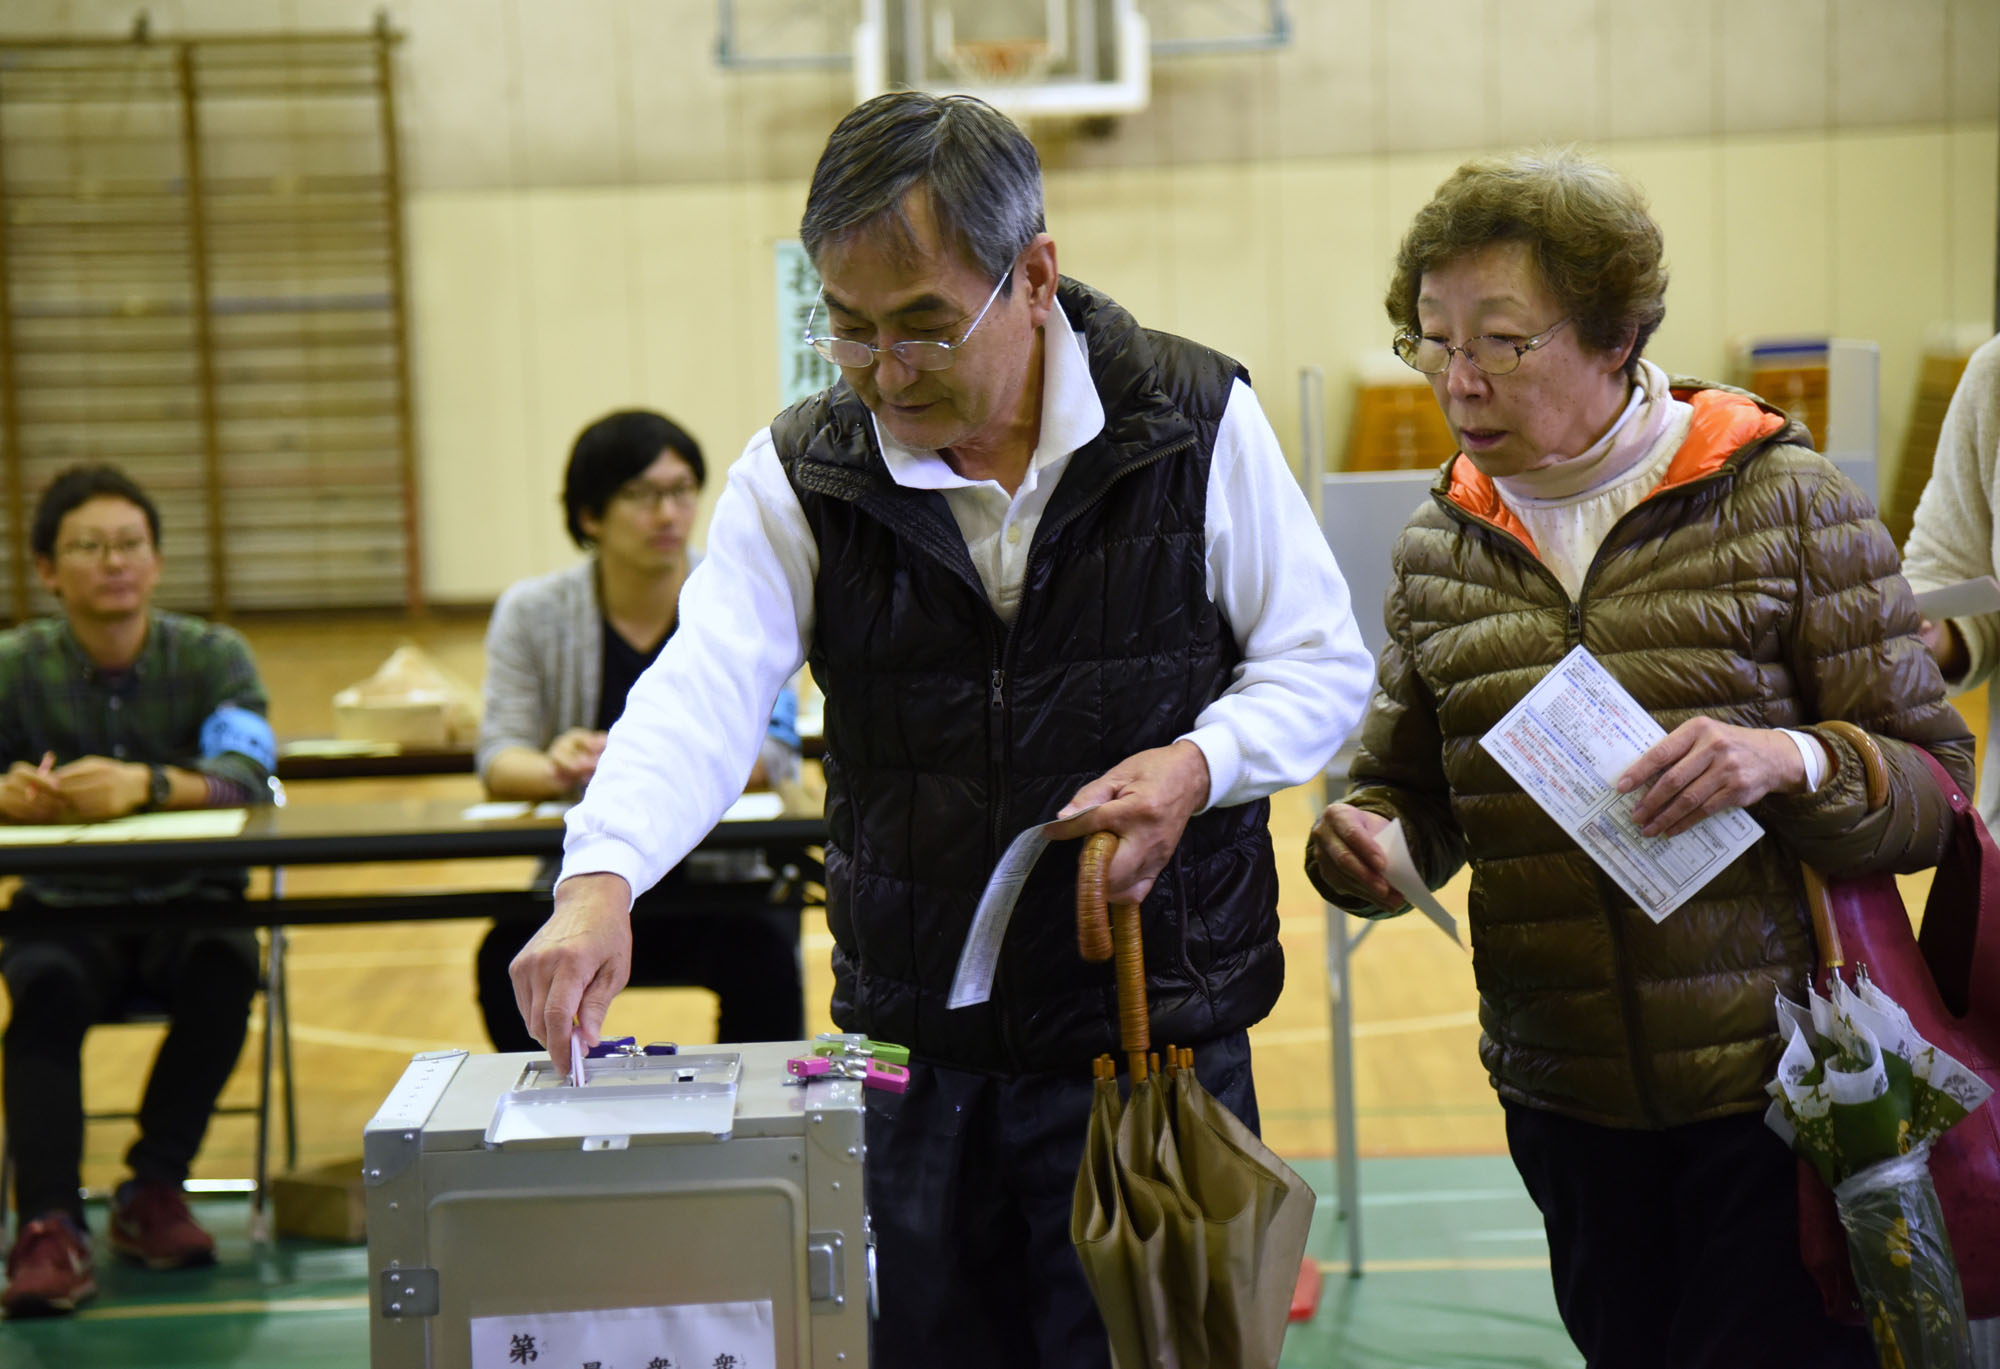 People cast ballots in the Lower House election at a polling station in Minato Ward, Tokyo, on Sunday. | SATOKO KAWASAKI